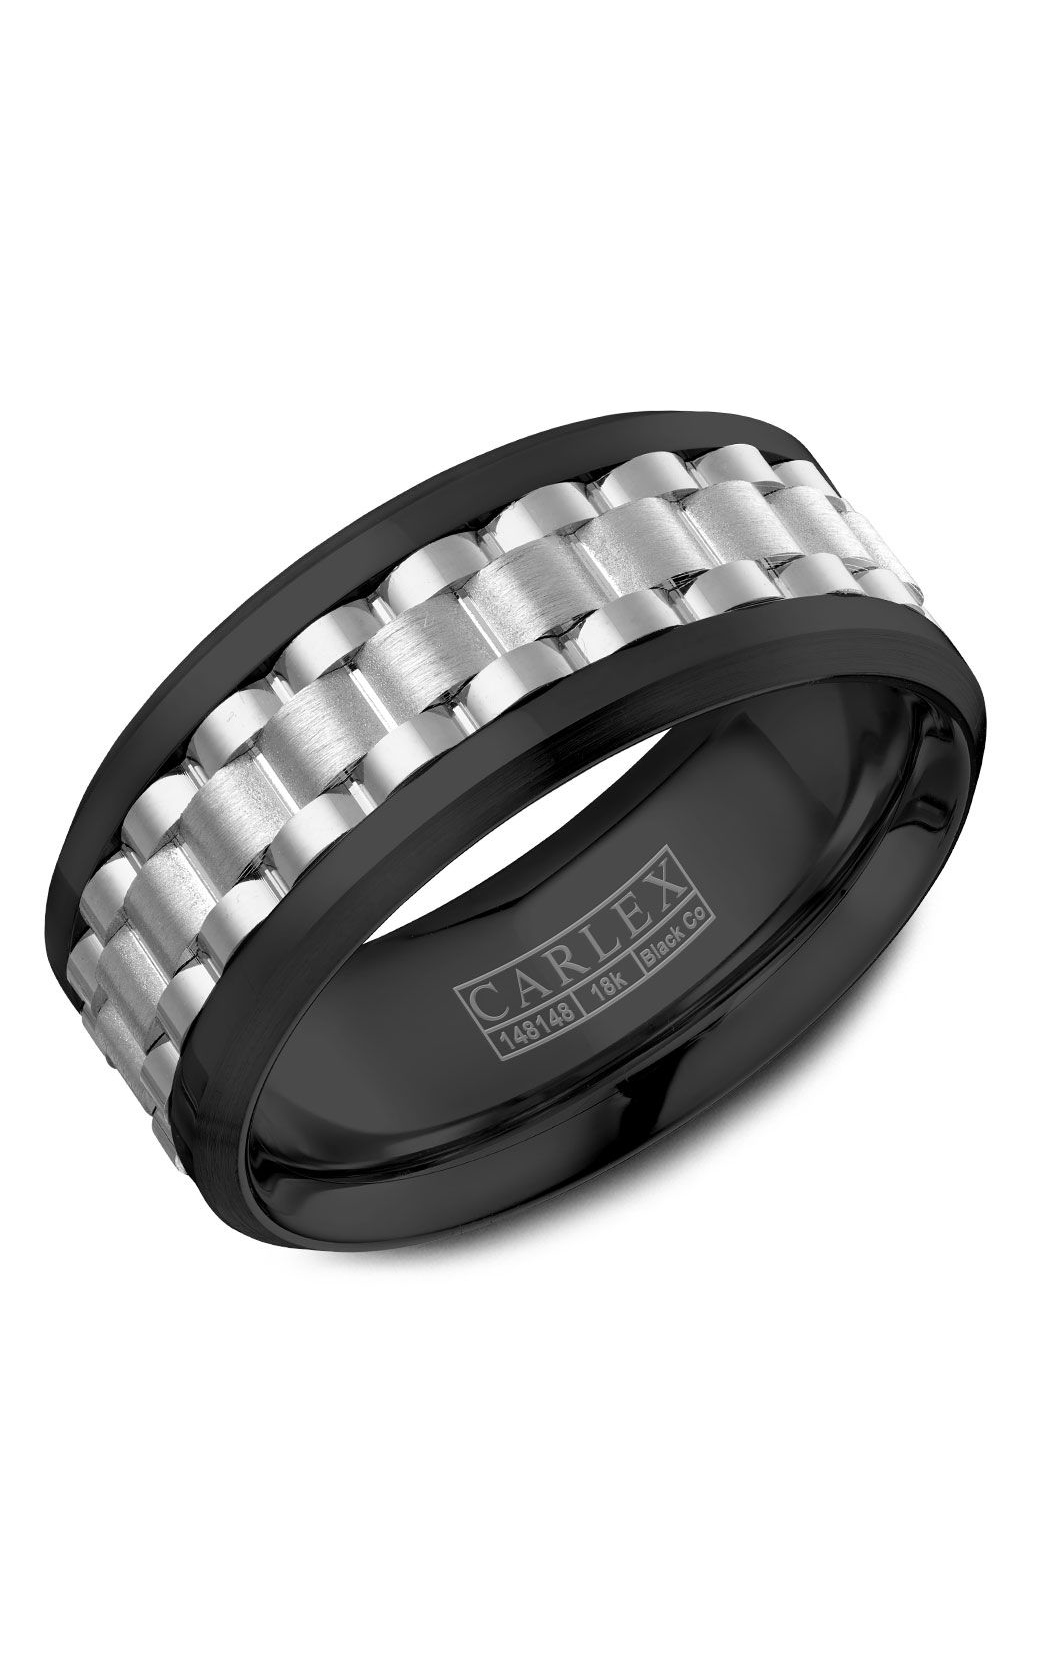 Carlex Sport Men's Wedding Band CX3-0022WWB product image